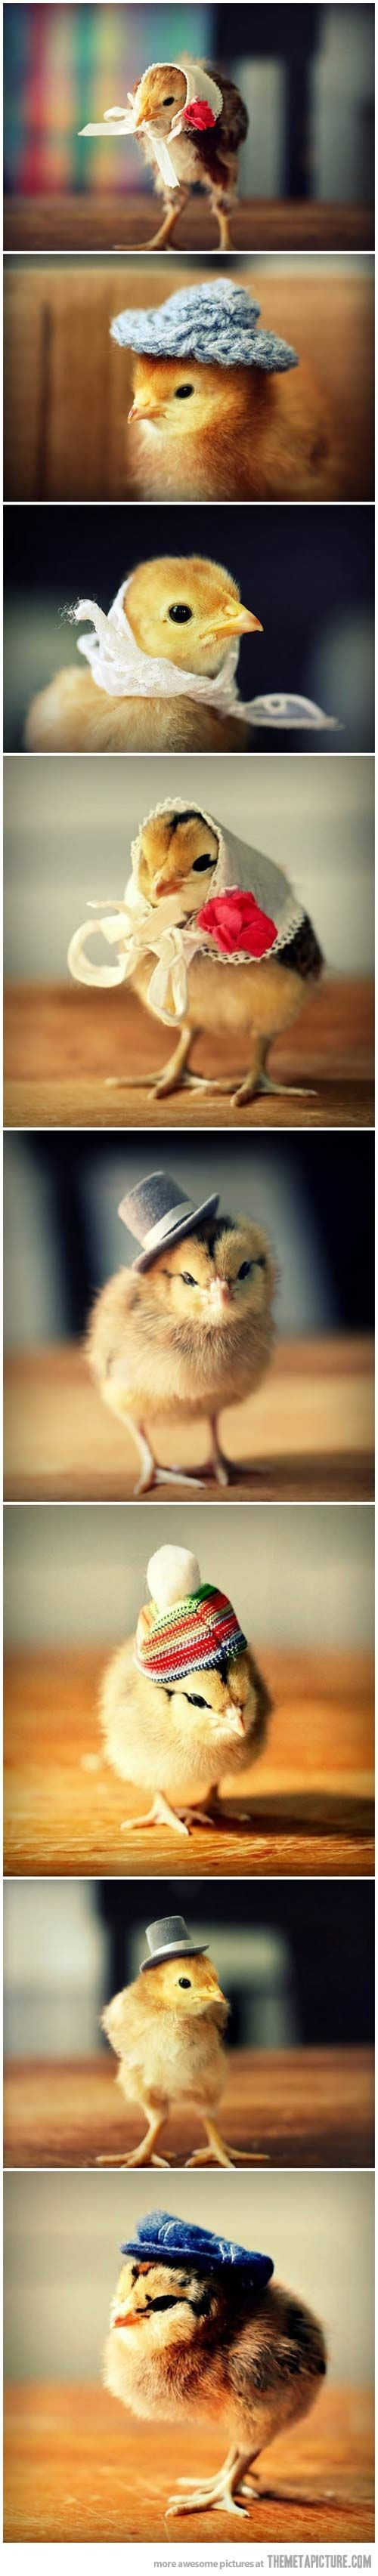 Chicks in hats... This might be the most adorable thing I have ever seen.